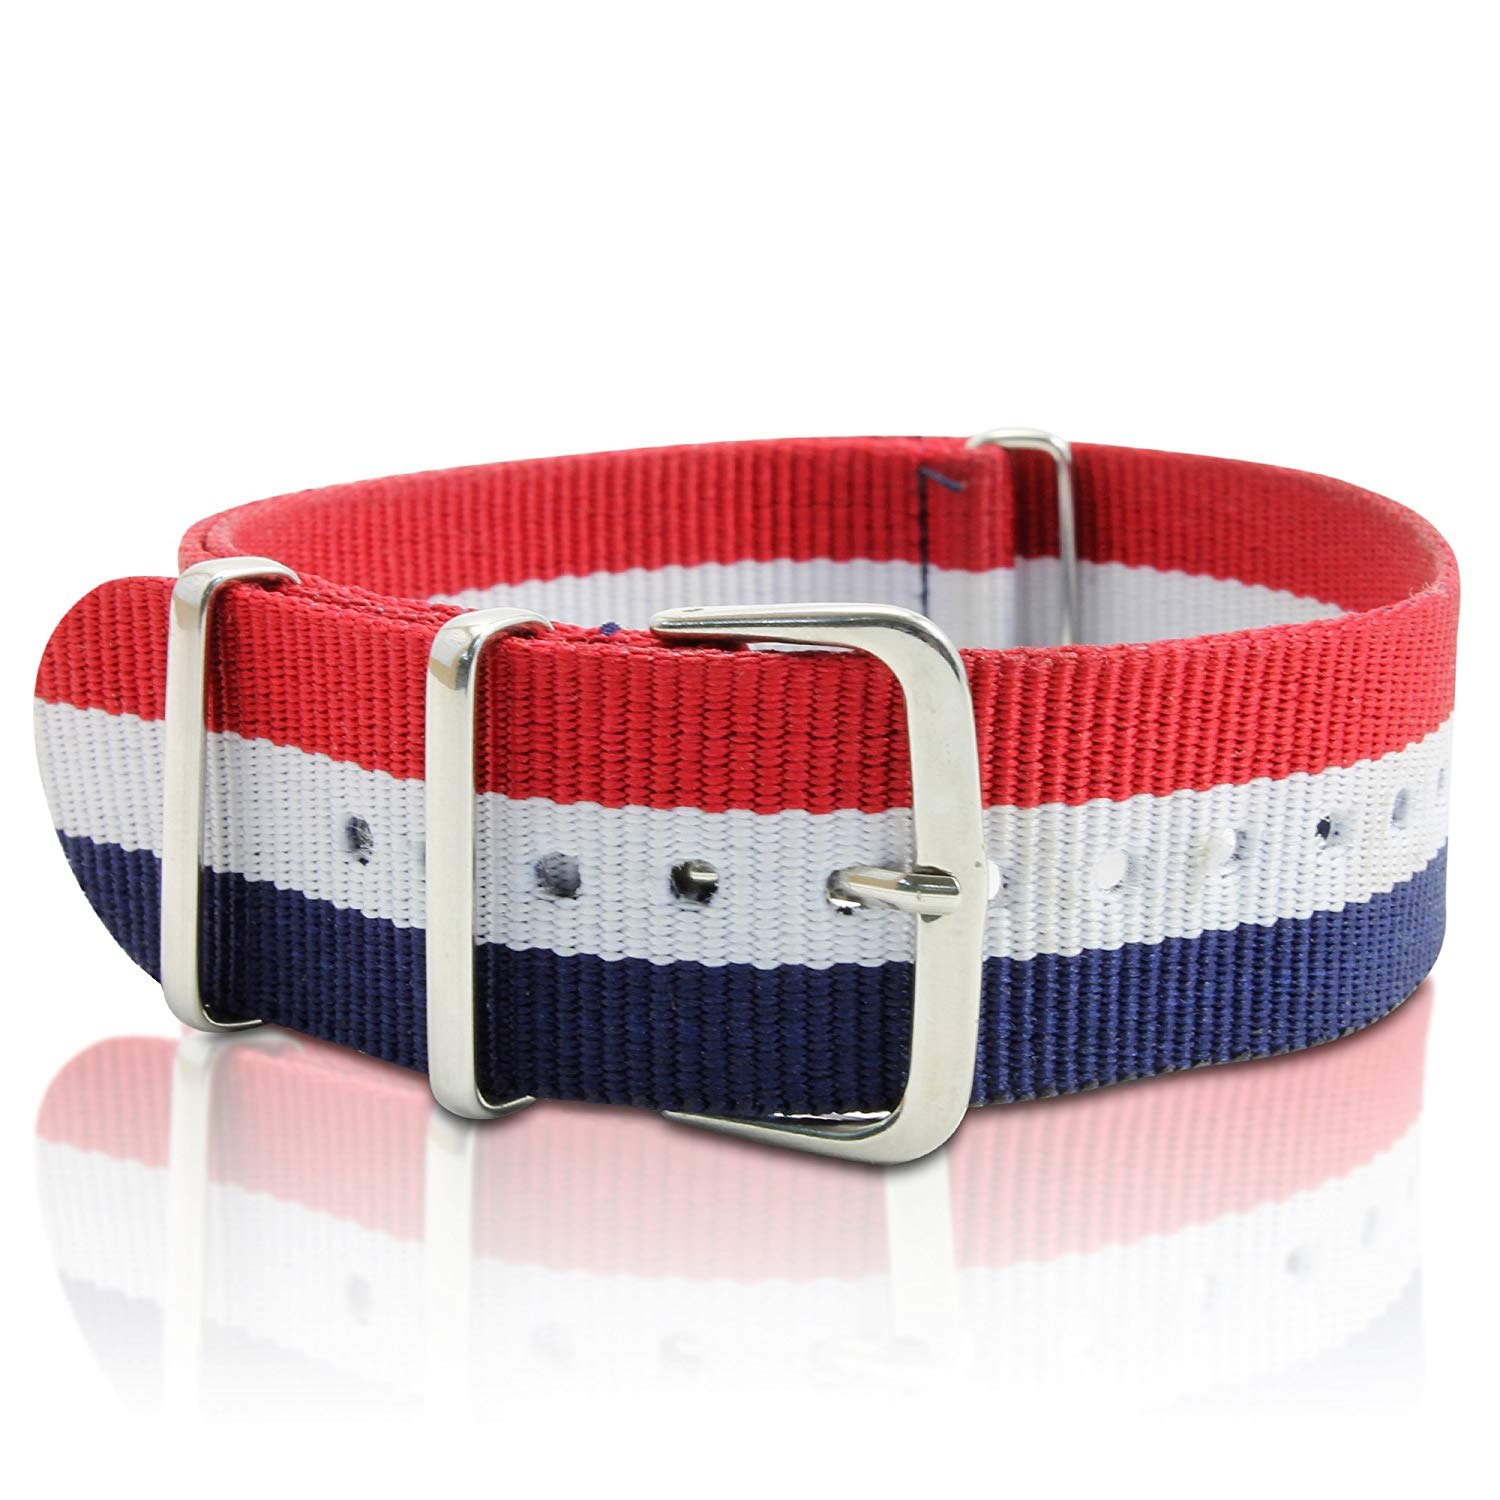 Whatswatch 22mm Nylon Striped Blue /White/Red Replacement Watch Strap Band